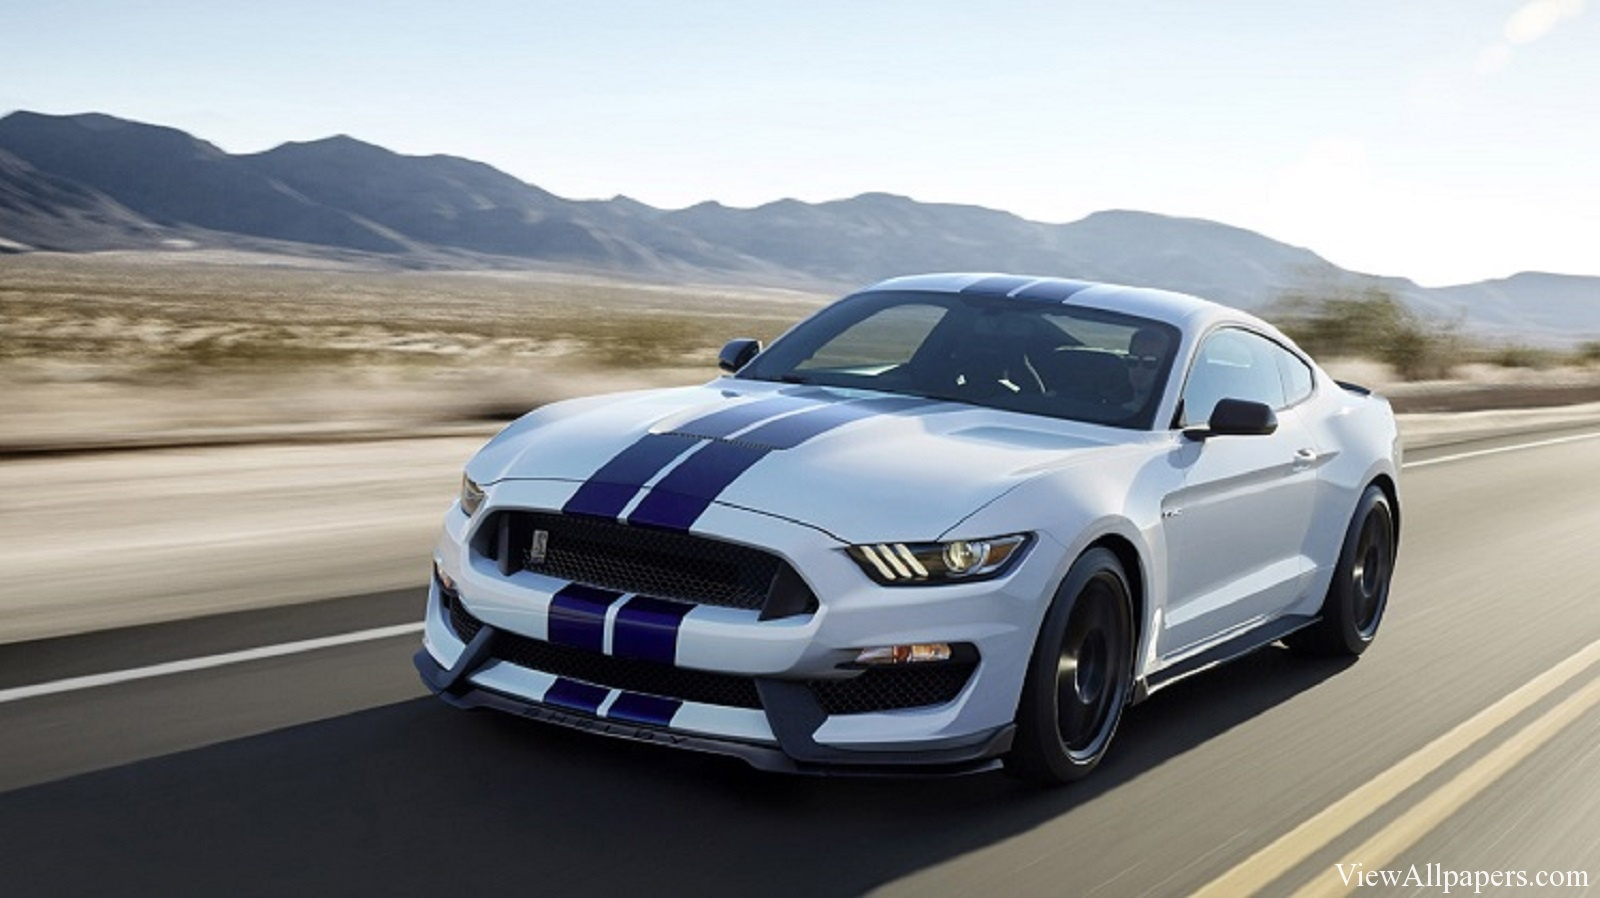 Wallpaper download 2016 Mustang Shelby GT350 Wallpaper 1600x898